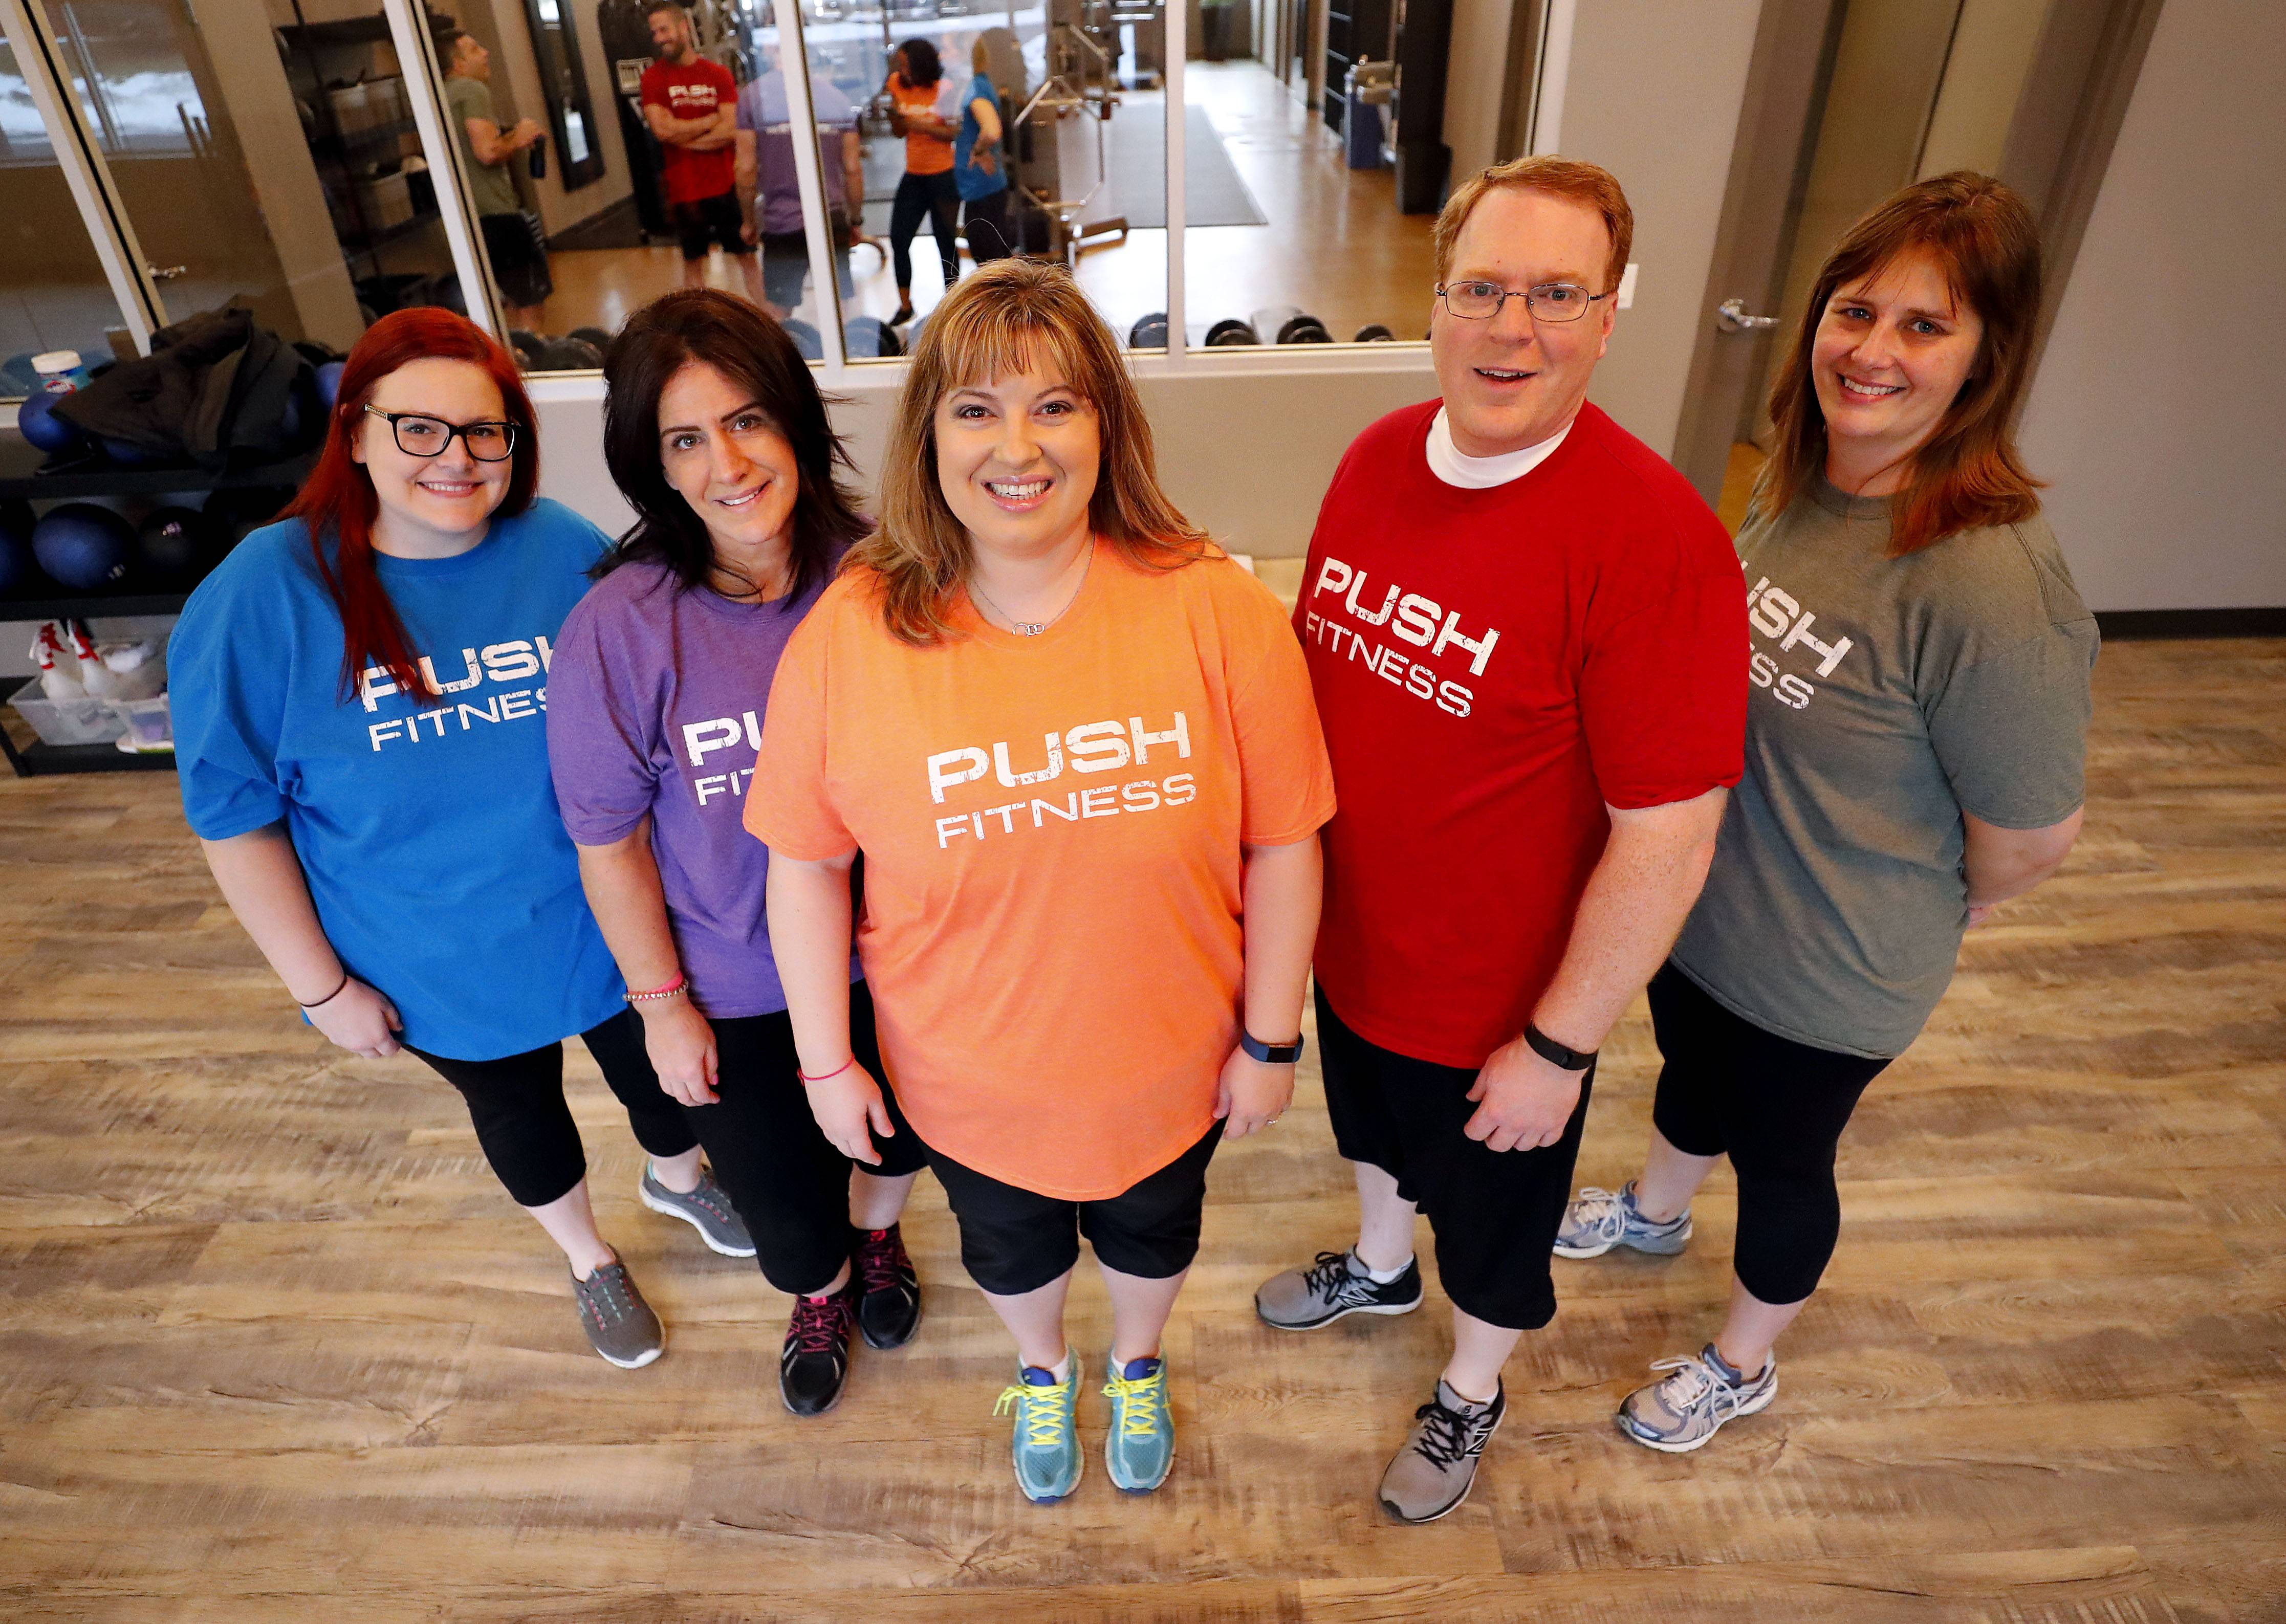 Meet the 2018 Fittest Loser contestants: Kimberly Rosewell, left, of Roselle, Nicole Mueller of Schaumburg, Shelly Daley of Arlington Heights, Chad Lowry of Mount Prospect and Kirsten Binder of Schaumburg.